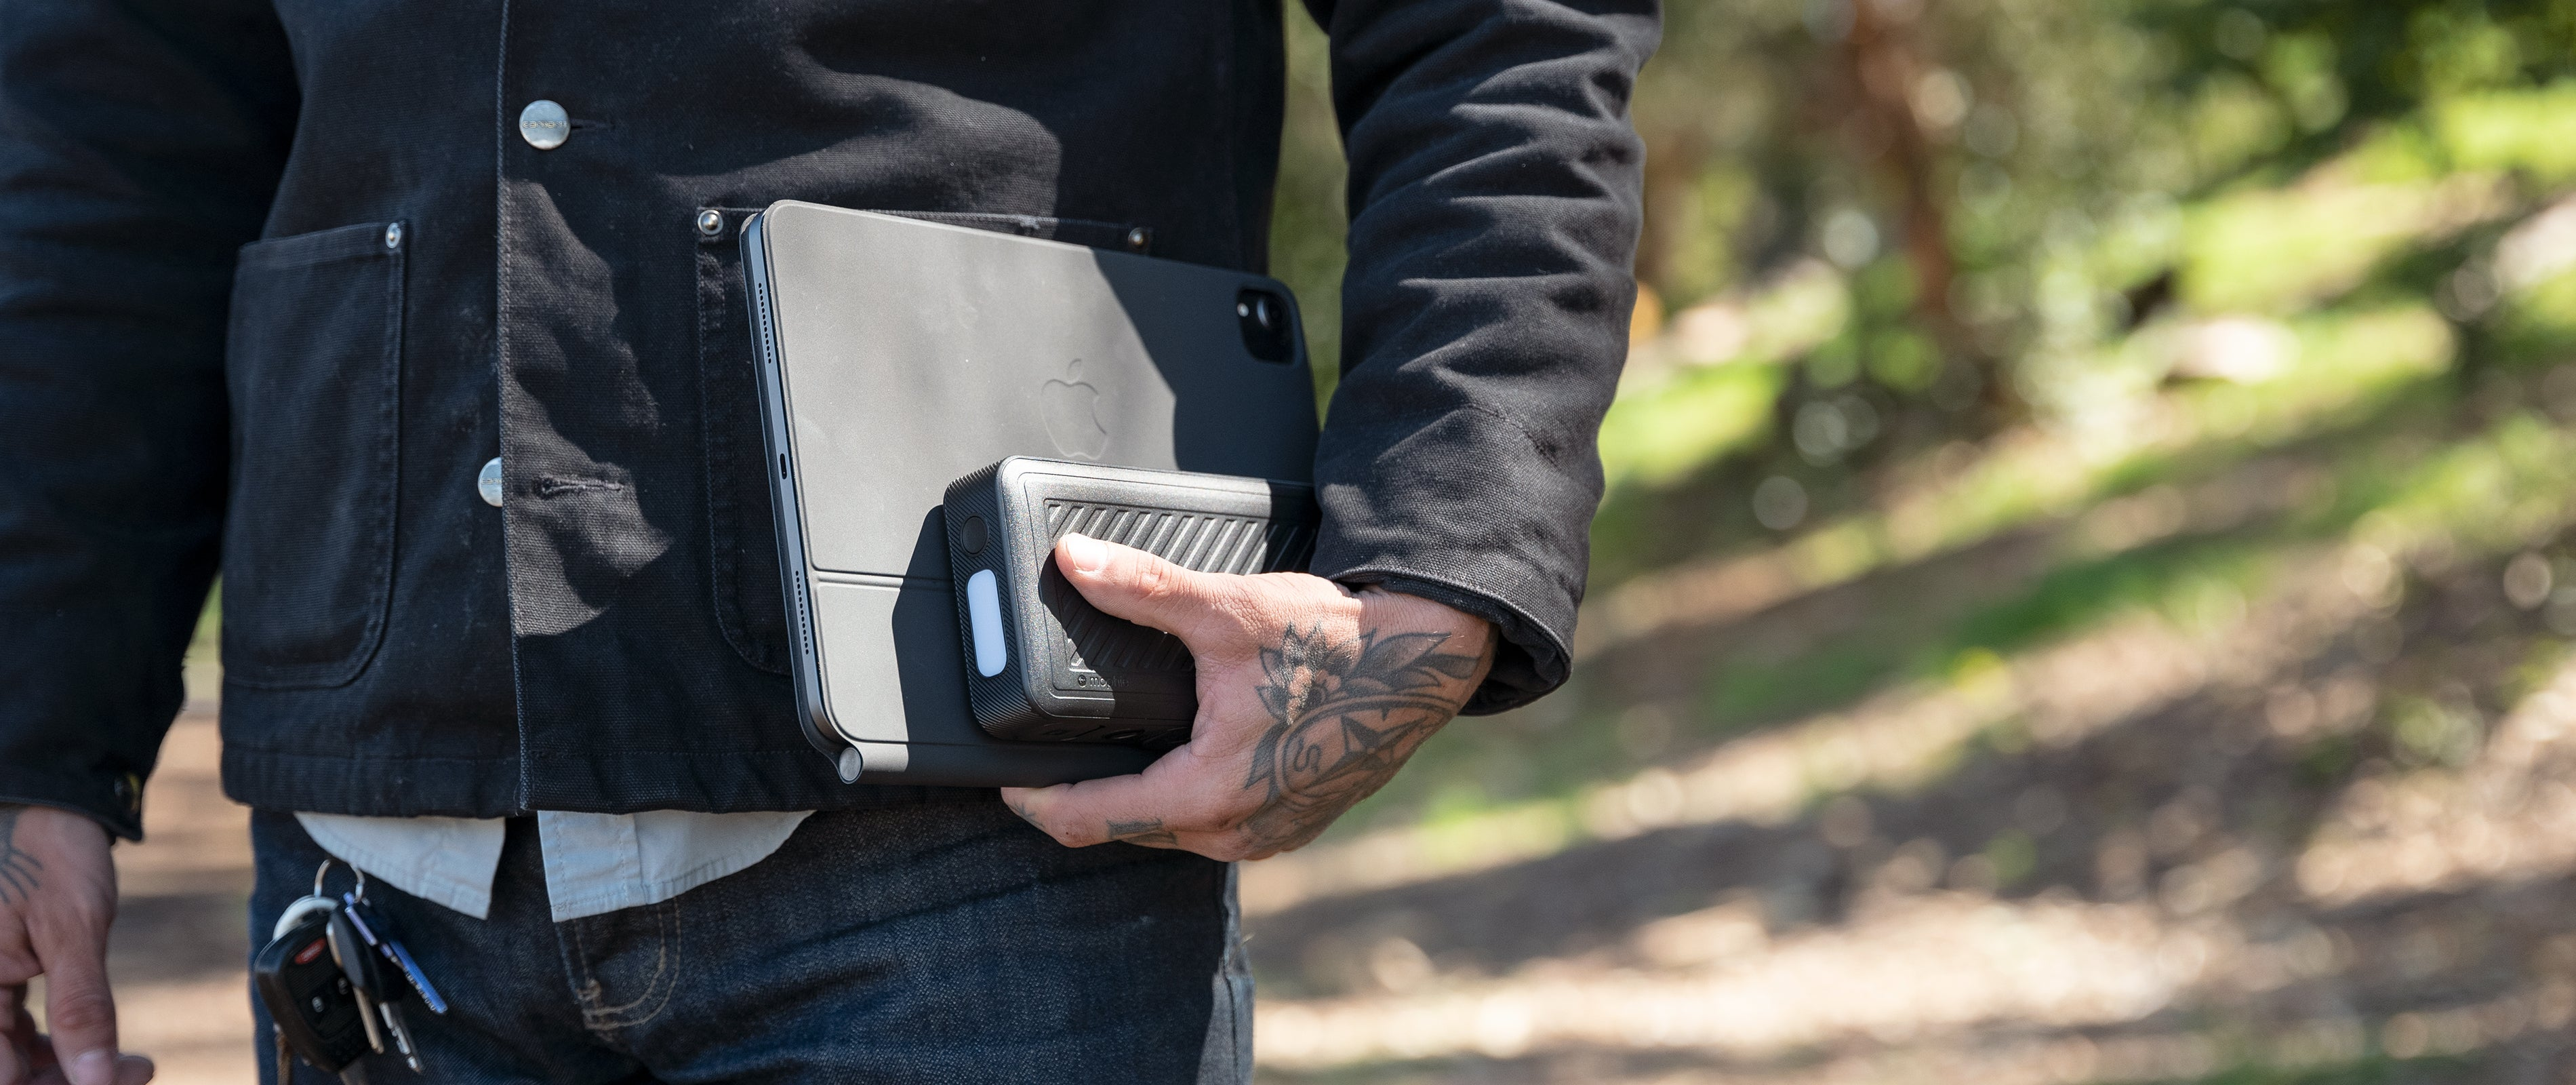 man holding powerstation go rugged compact